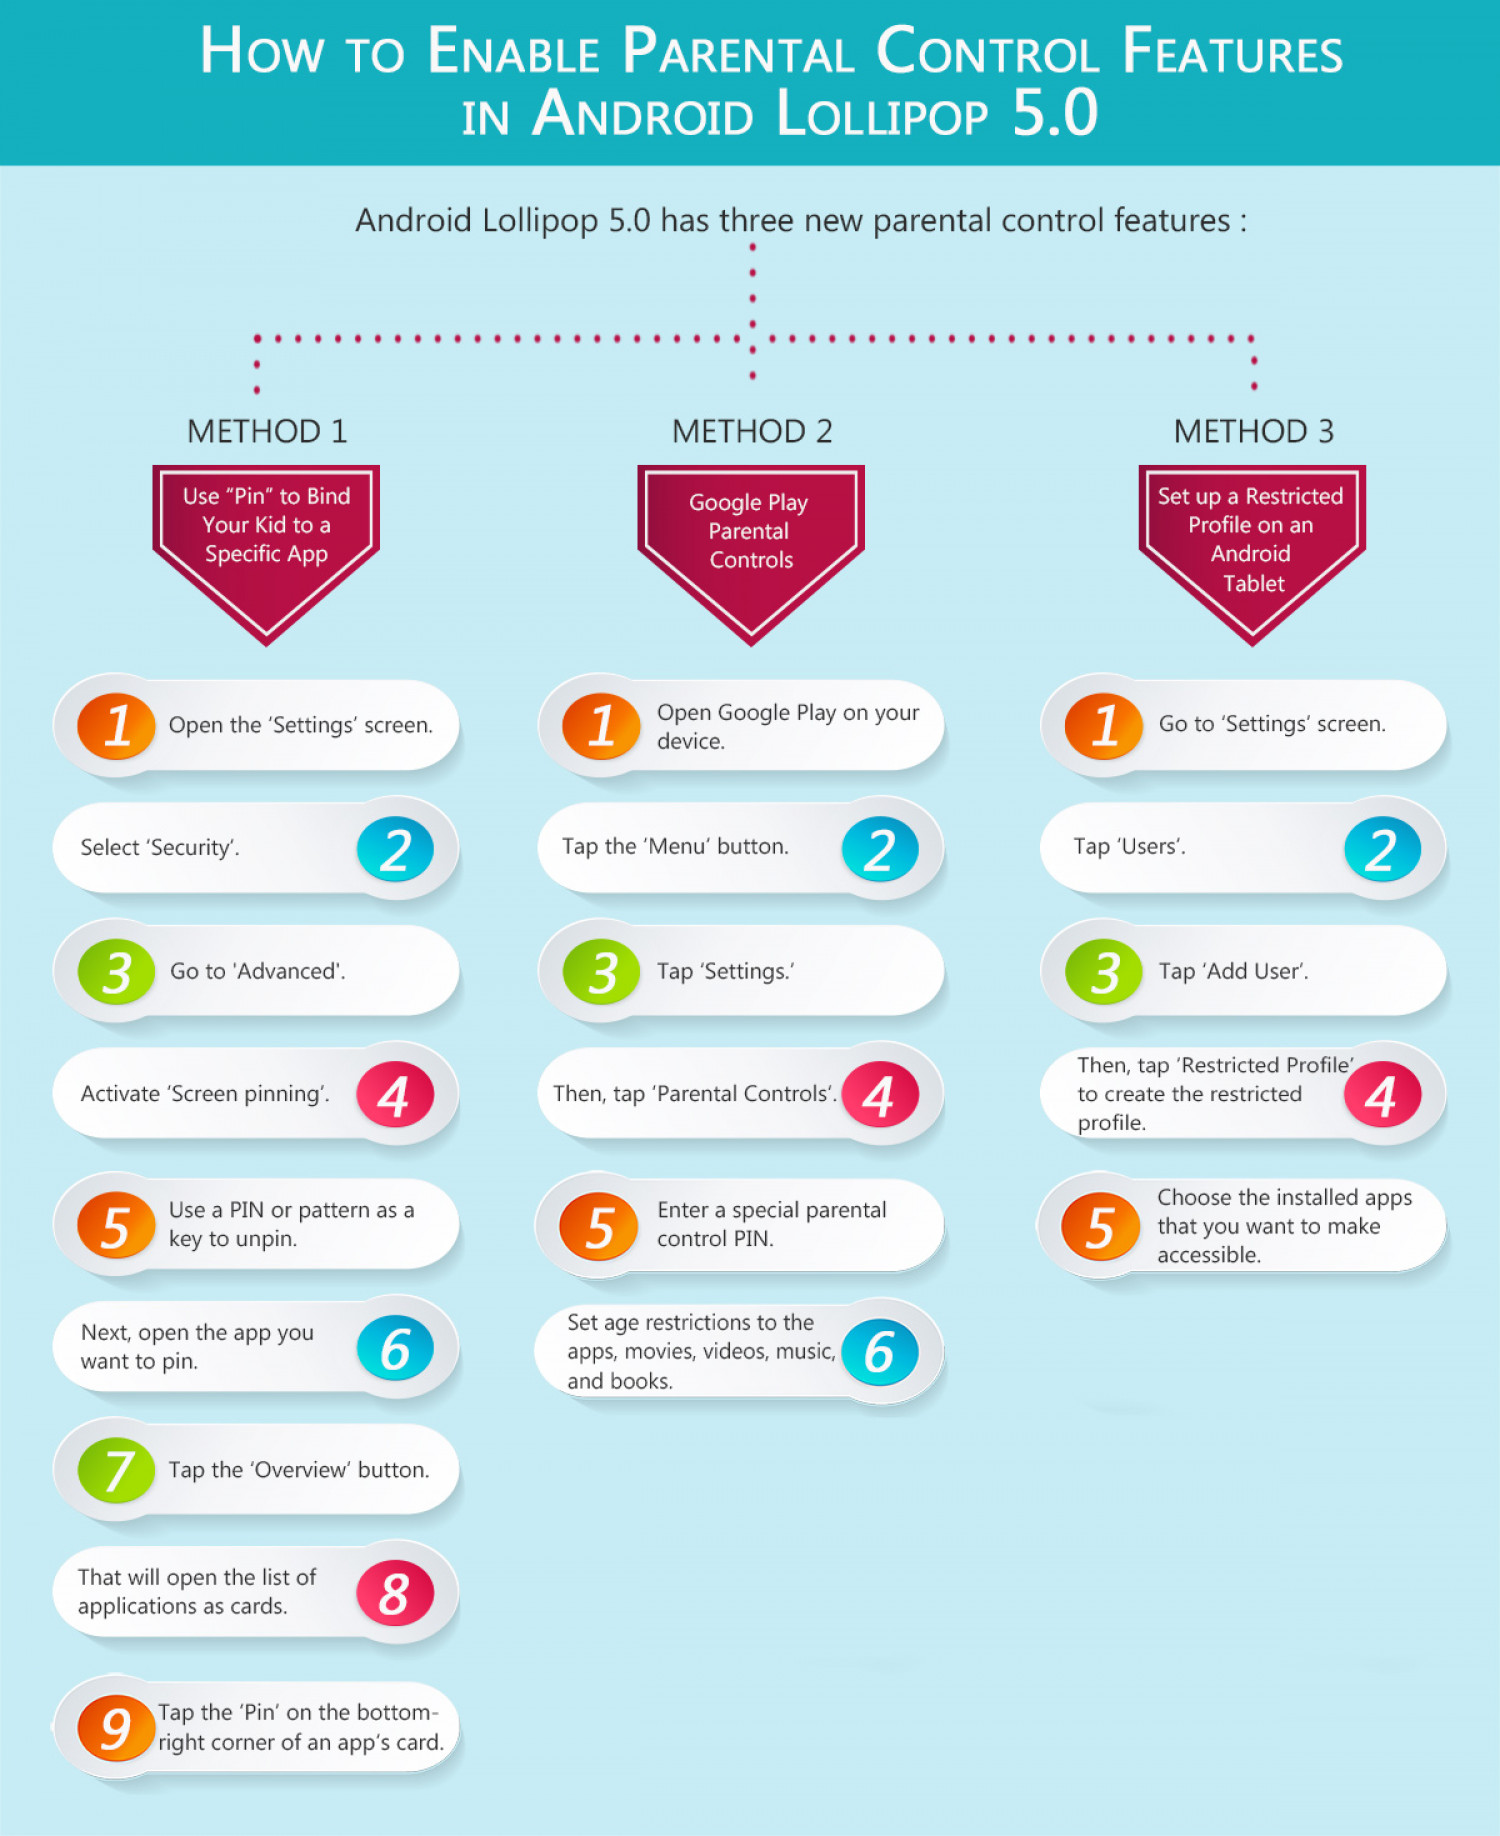 How to Enable Parental Control Features in Android Lollipop 5.0? Infographic